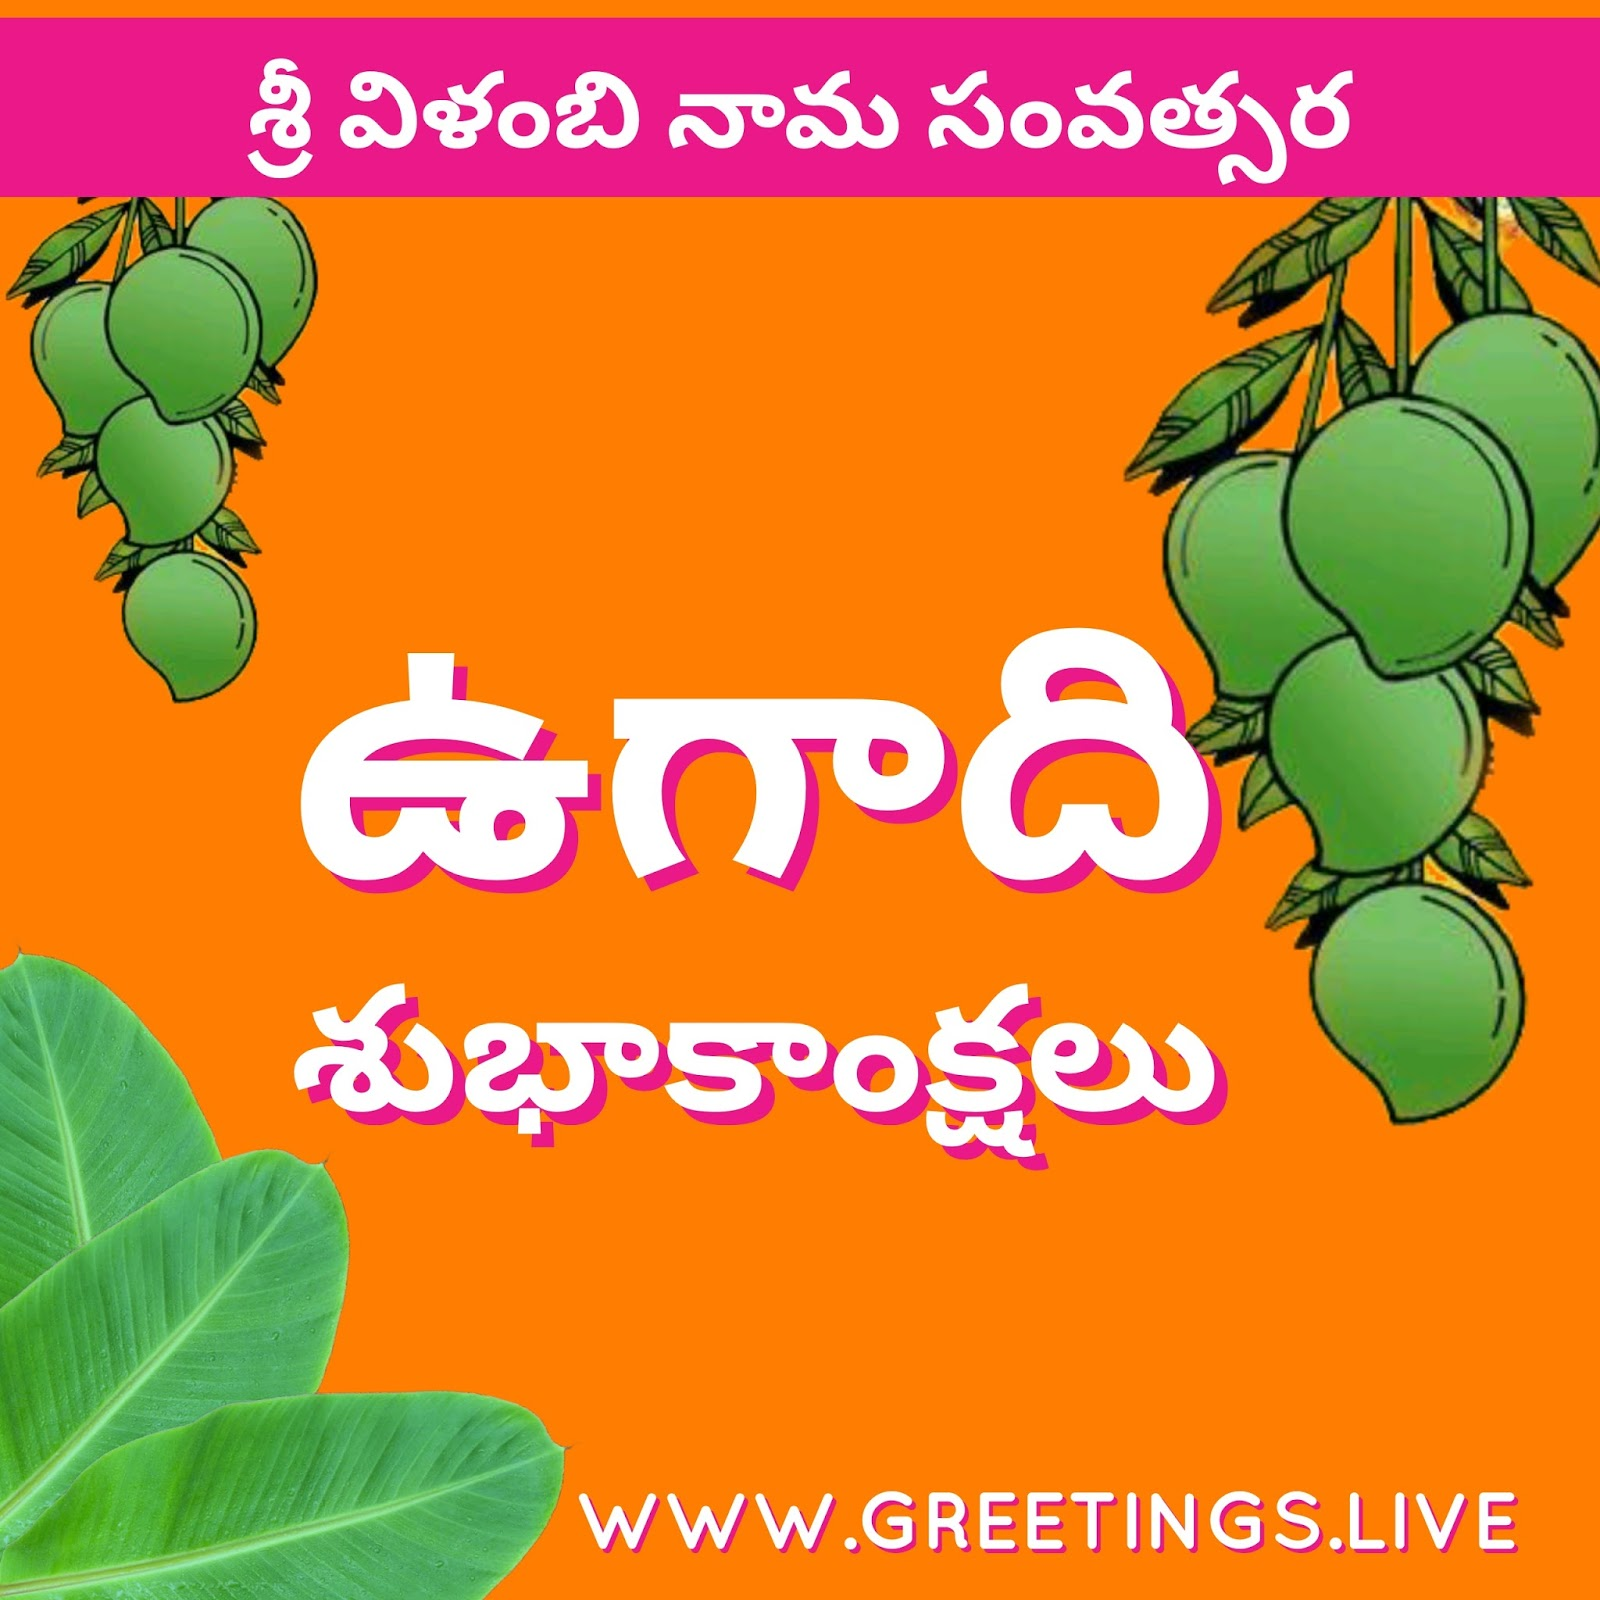 Greetingsve free hd images to express wishes all occasions telugu ugadi 2018 festival greetingslive hd image m4hsunfo Choice Image